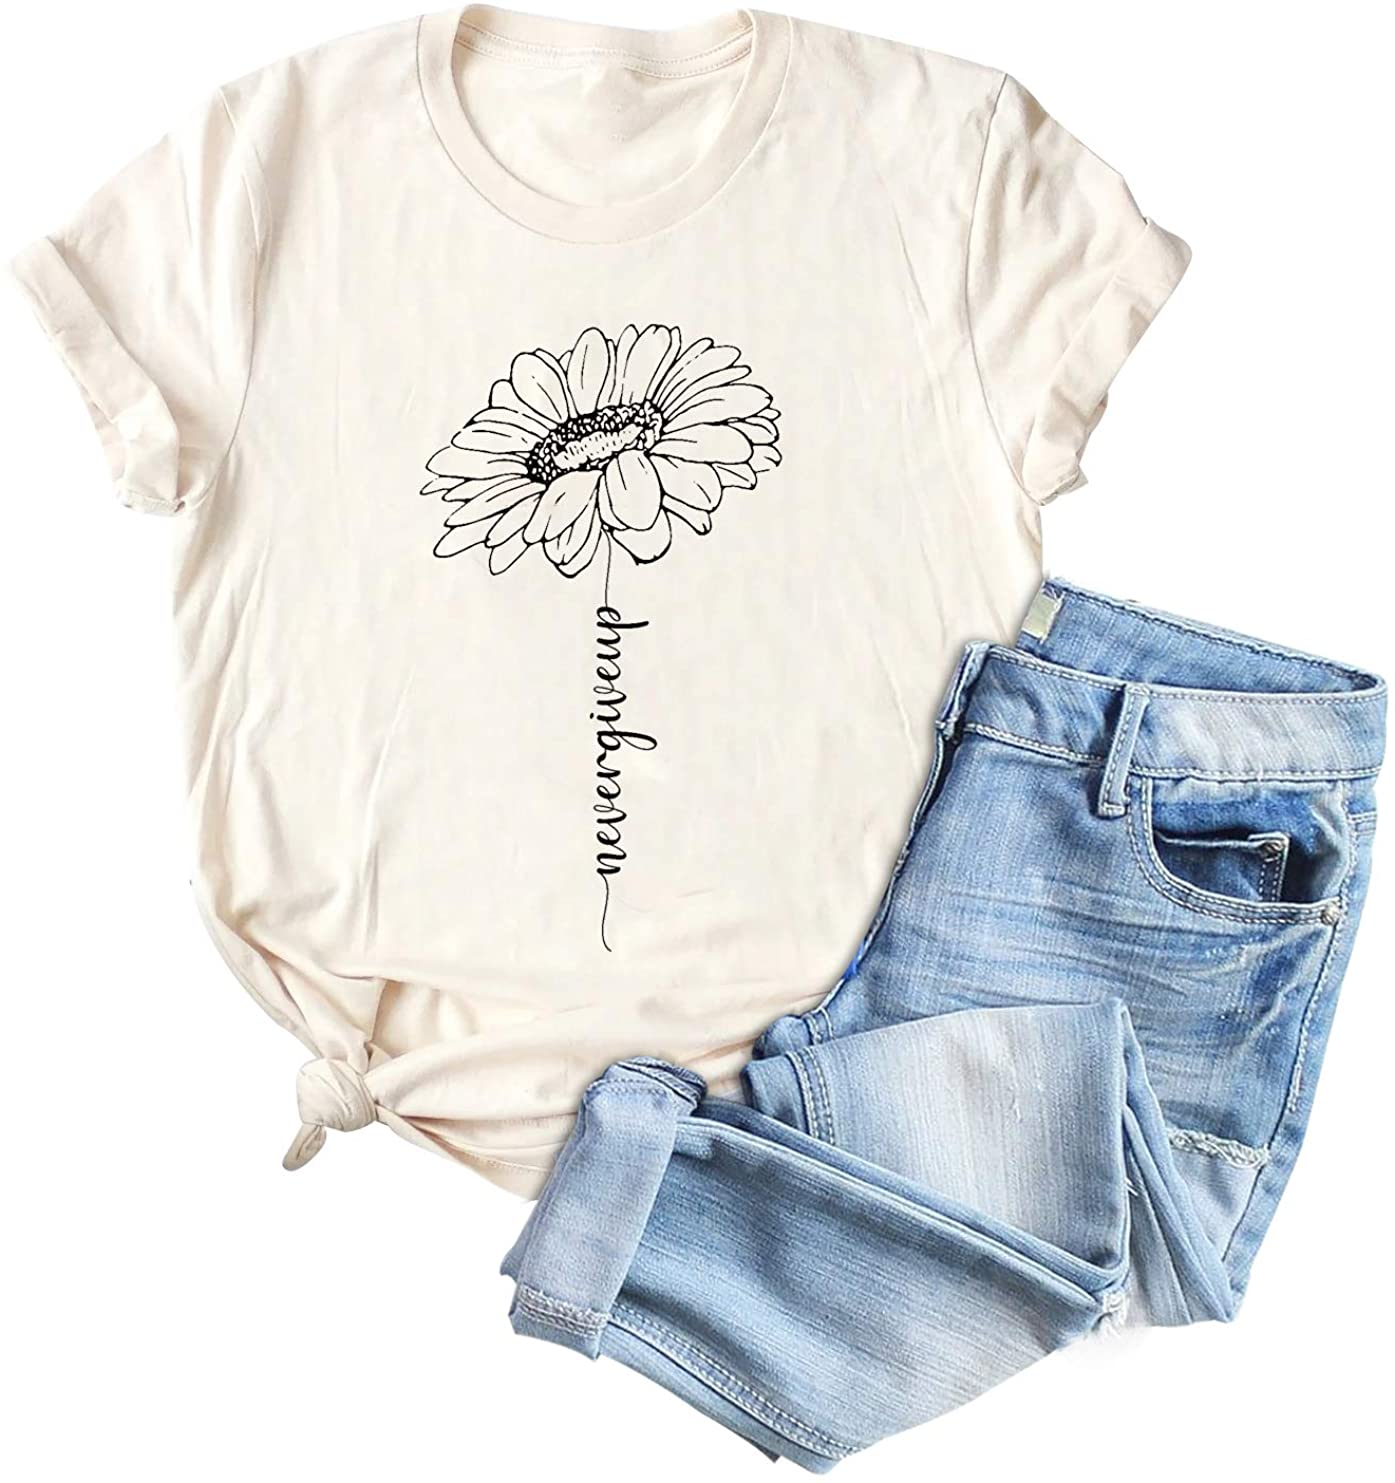 Sunflower Graphic T Shirts for Women Never Give Up Letter Print Short Sleeve Tee Tops (Large)